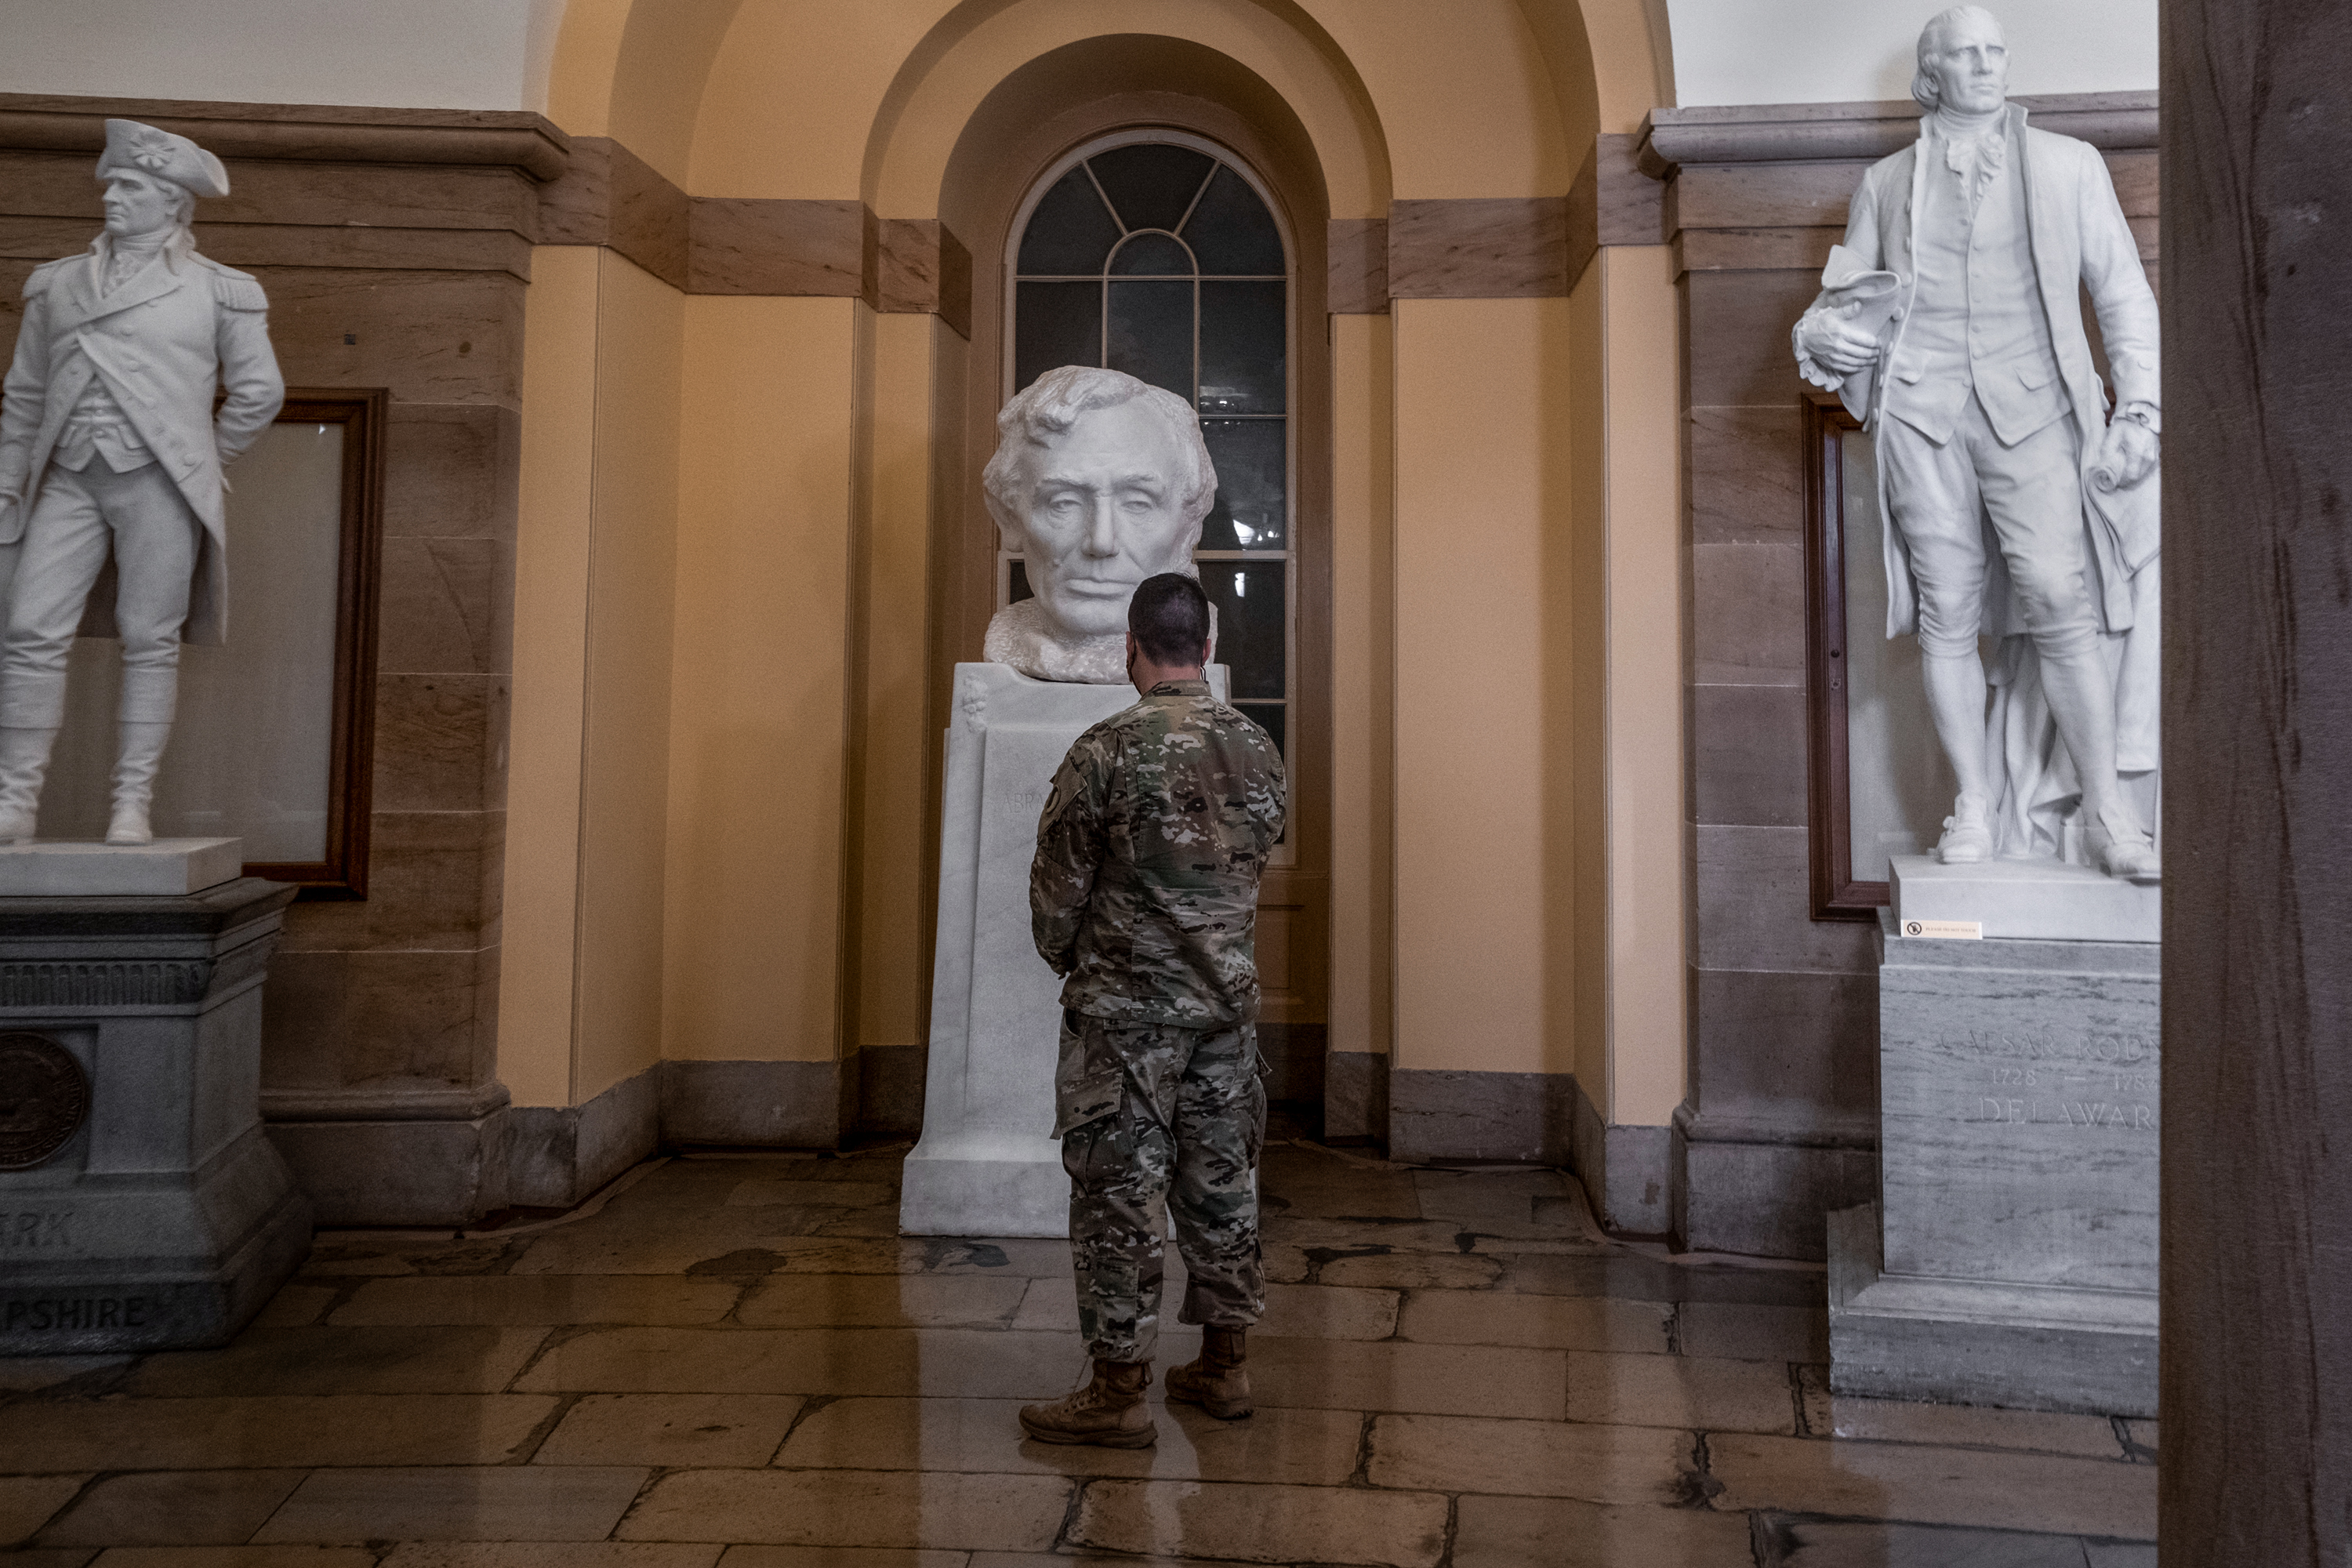 A National Guard soldier looks at Lincoln in the statutory in the capitol building in Washington DC.